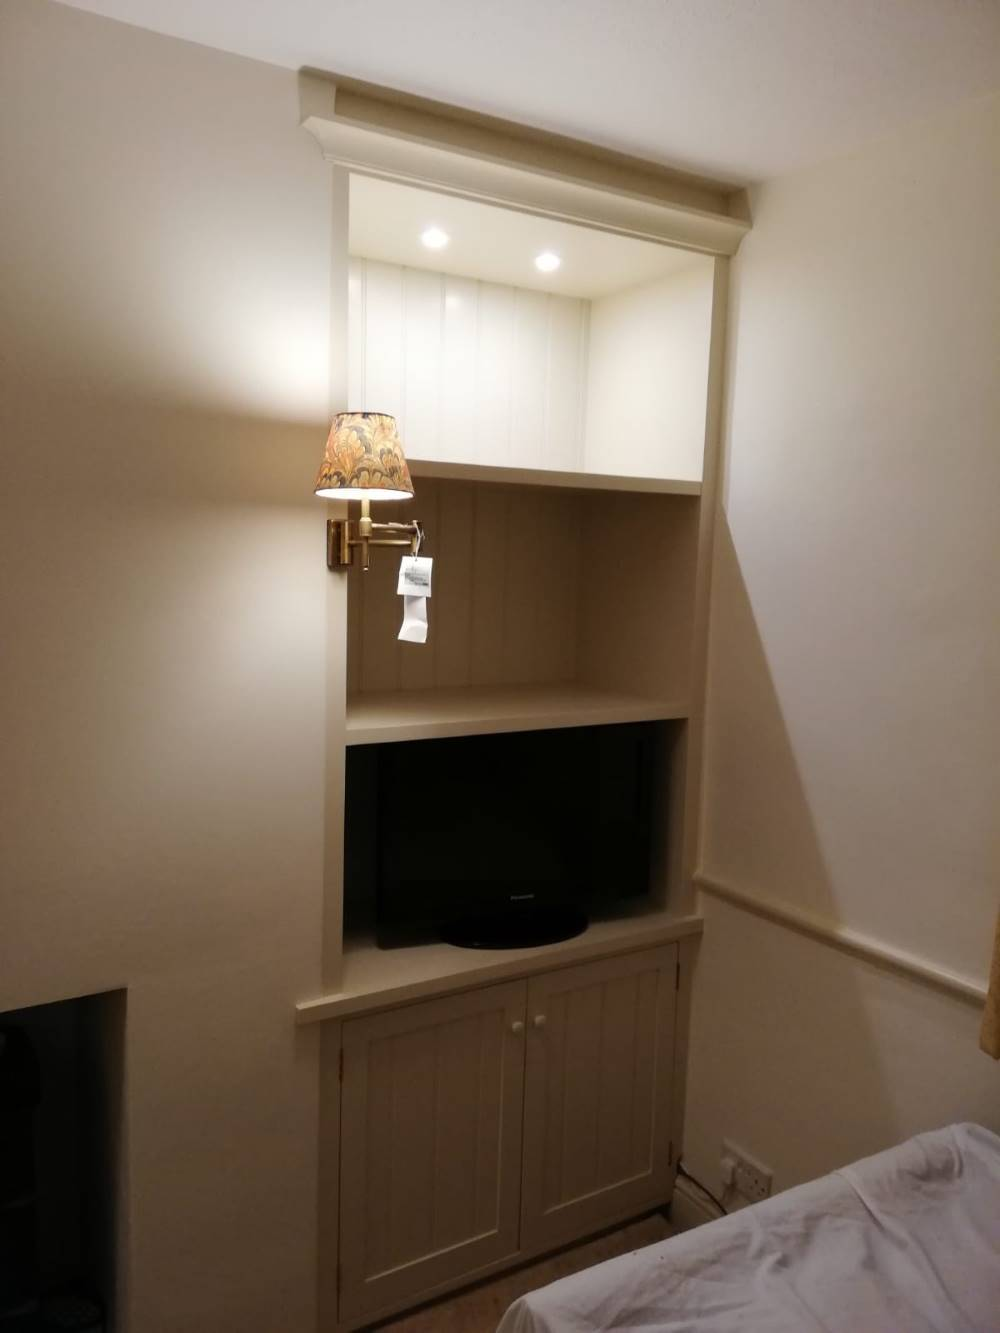 Bespoke Wooden Furniture Maker in Reading, Berkshire